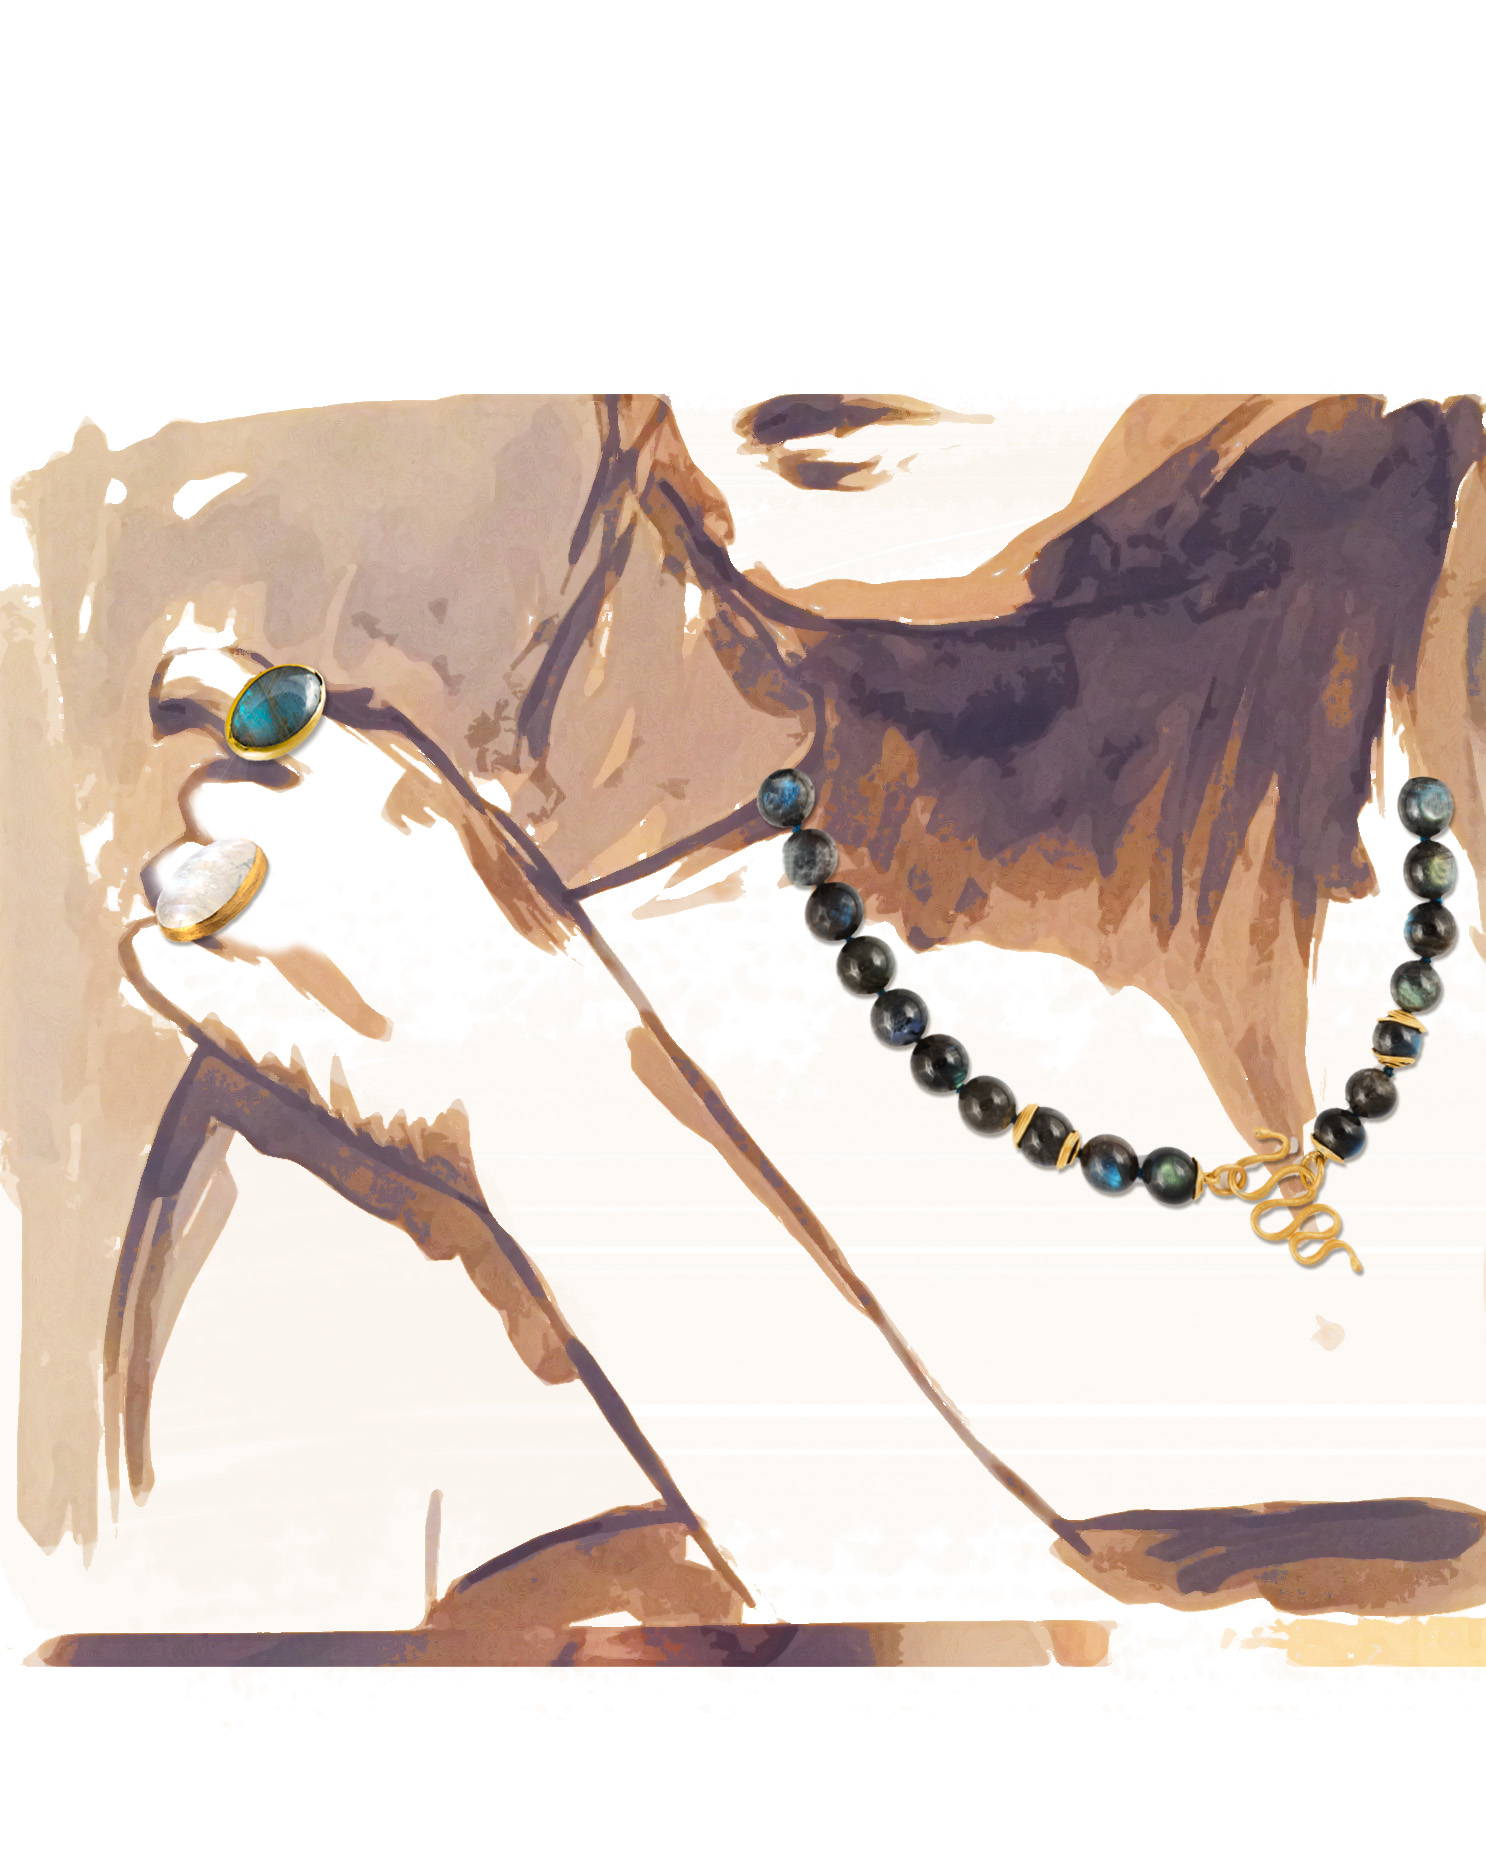 31- Rebecca Horn Untitled necklace, ring, ring